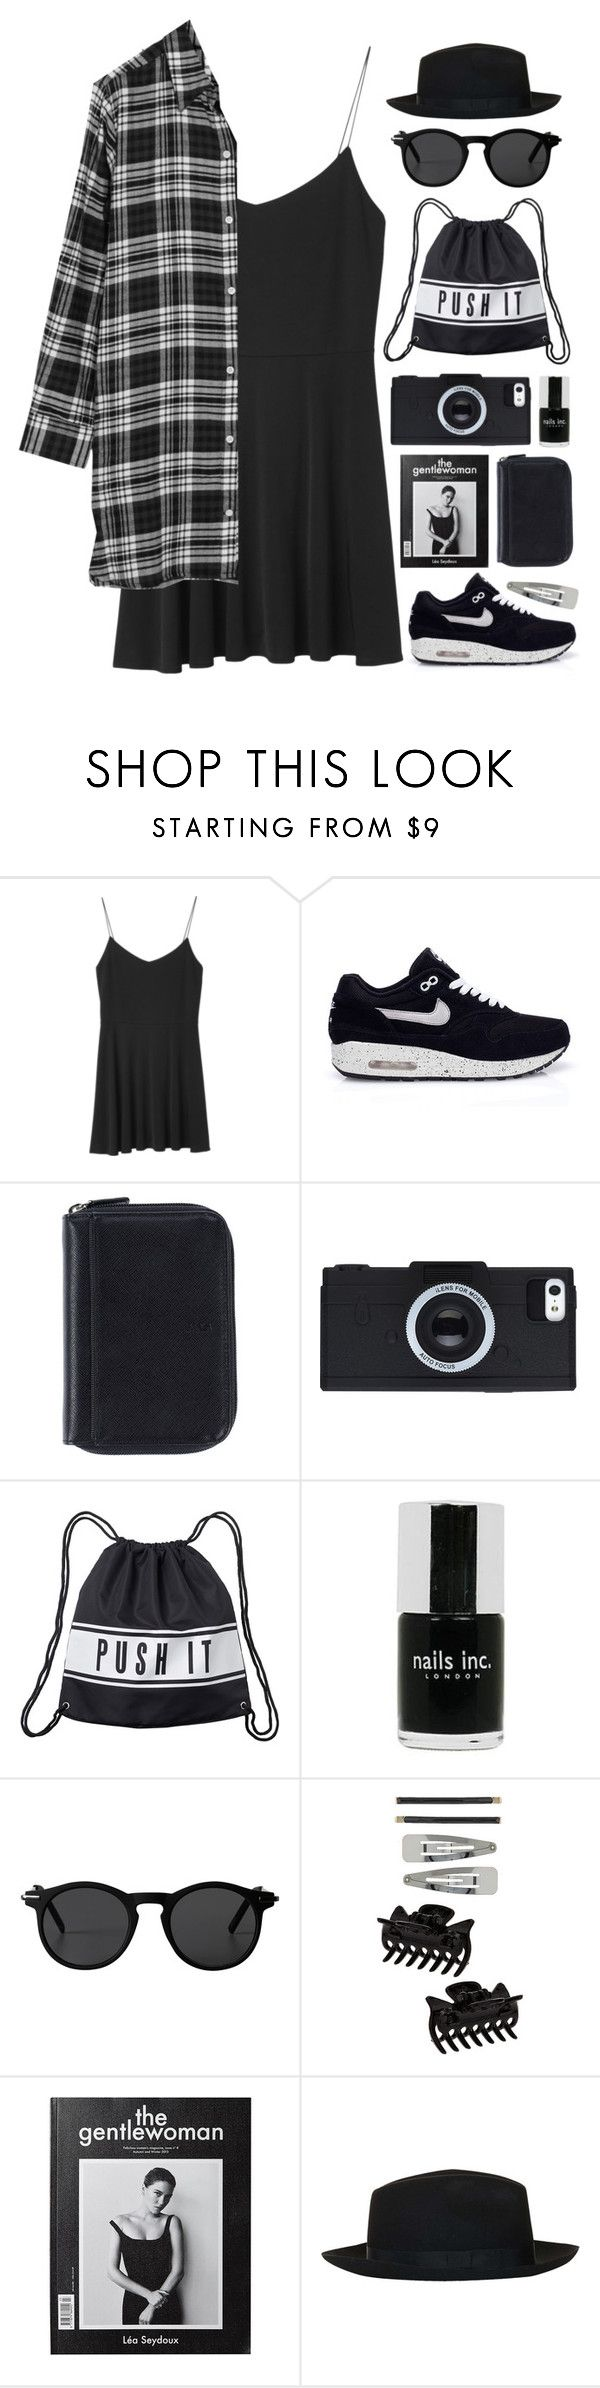 """""""Boundaries"""" by tania-maria ❤ liked on Polyvore featuring Monki, NIKE, Nava, Nails Inc., Dorothy Perkins, Topshop and DKNY"""